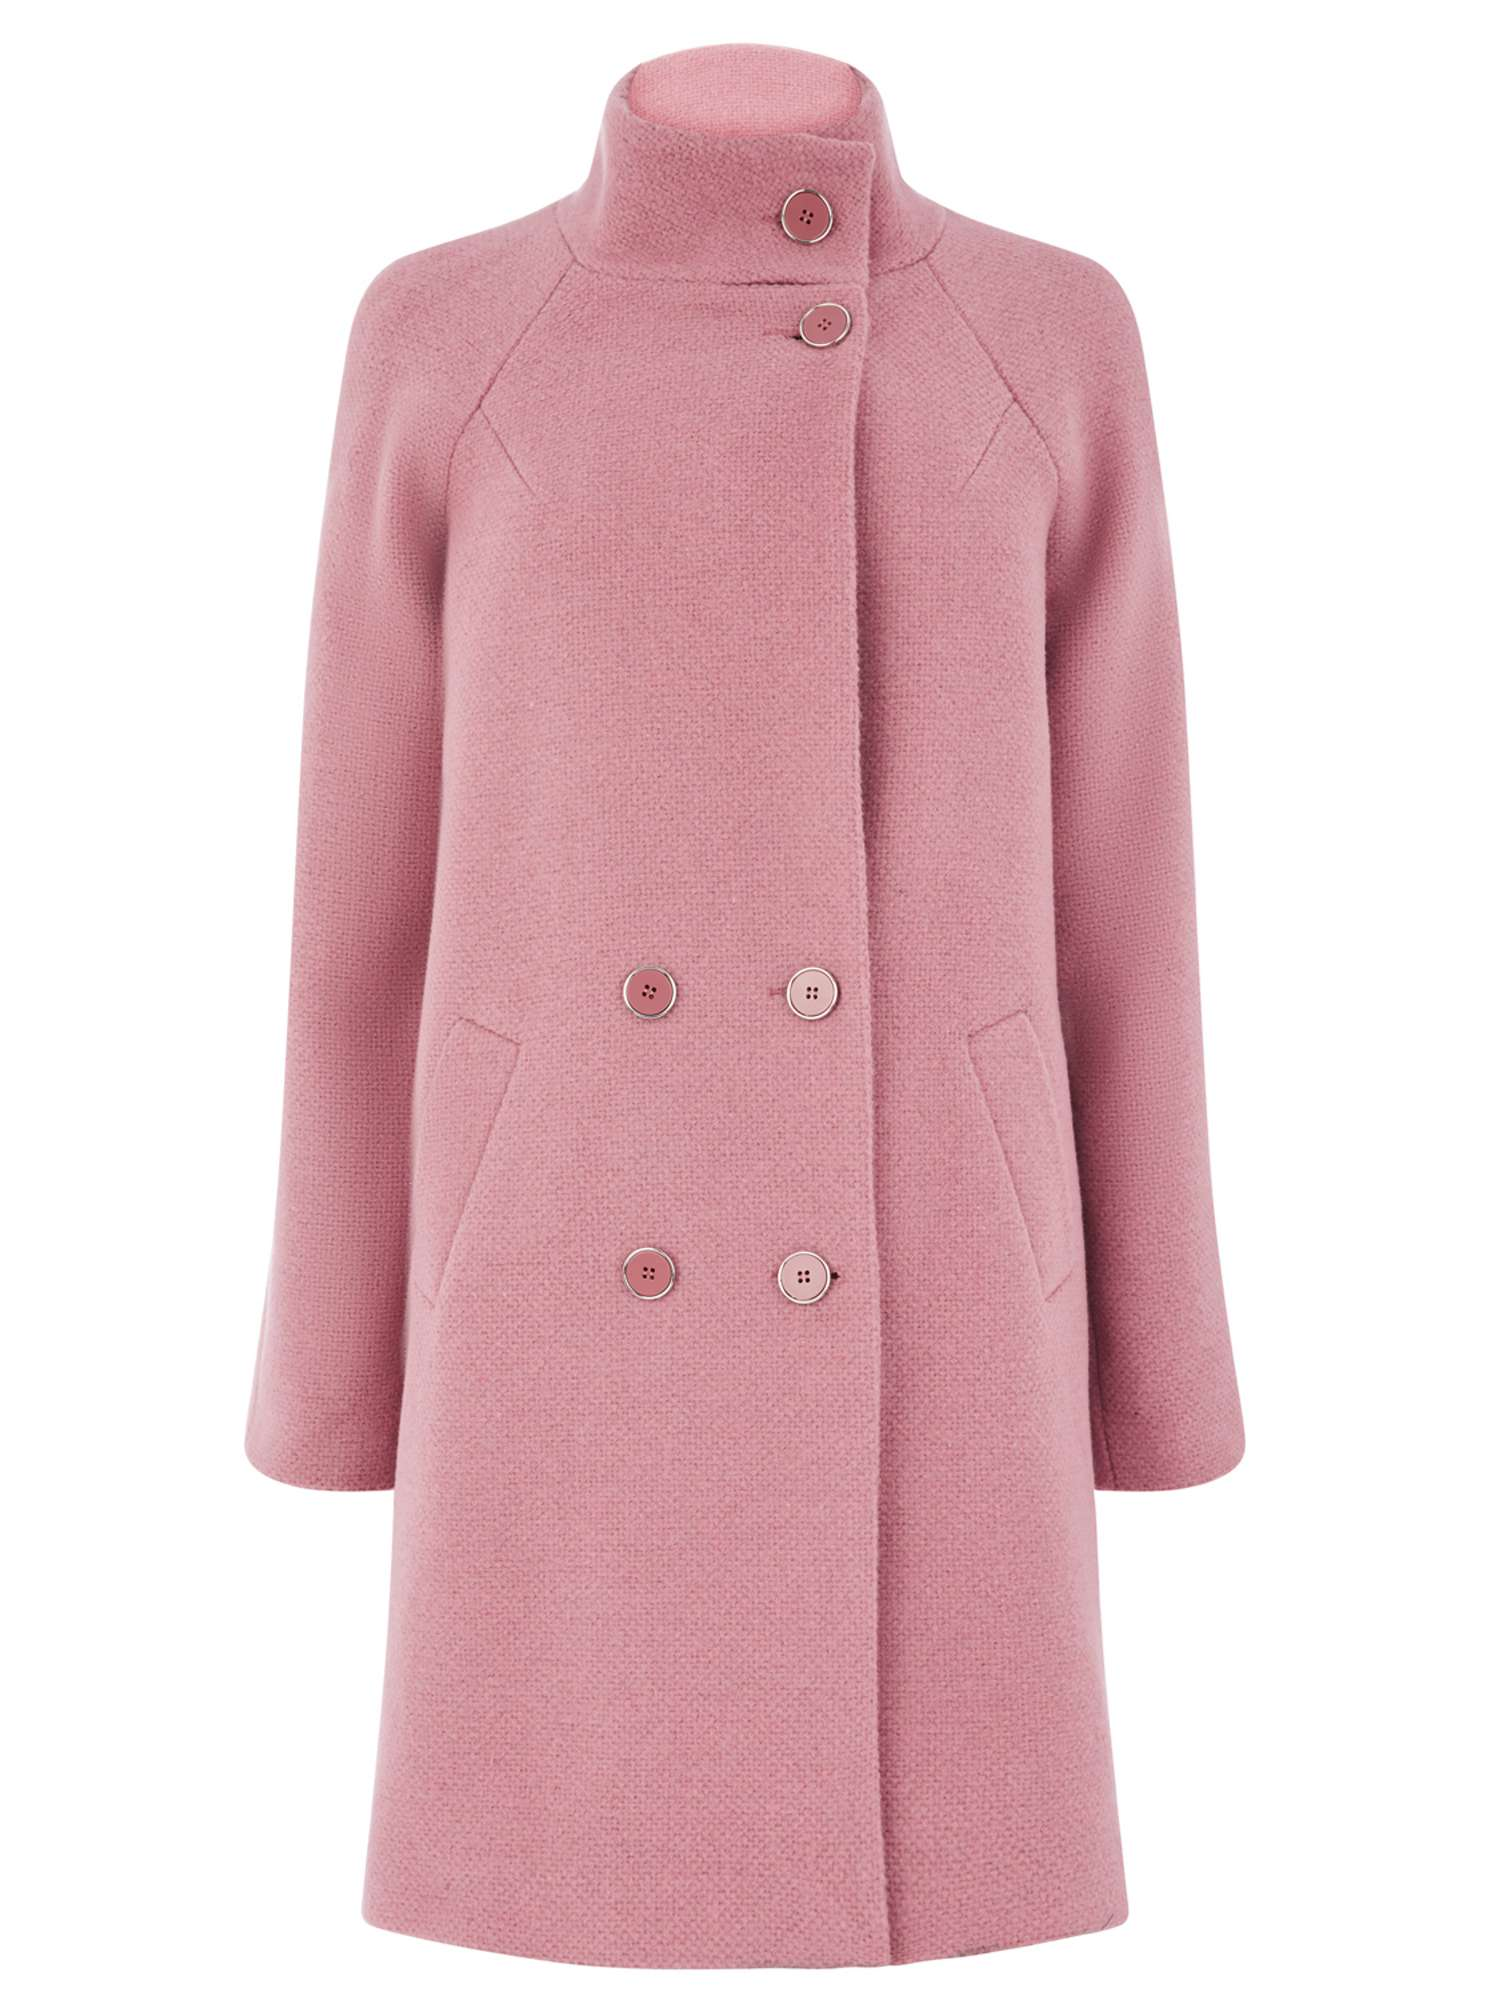 1c61d2339c House of Fraser Oasis Florence Db coat - Melan Magazine